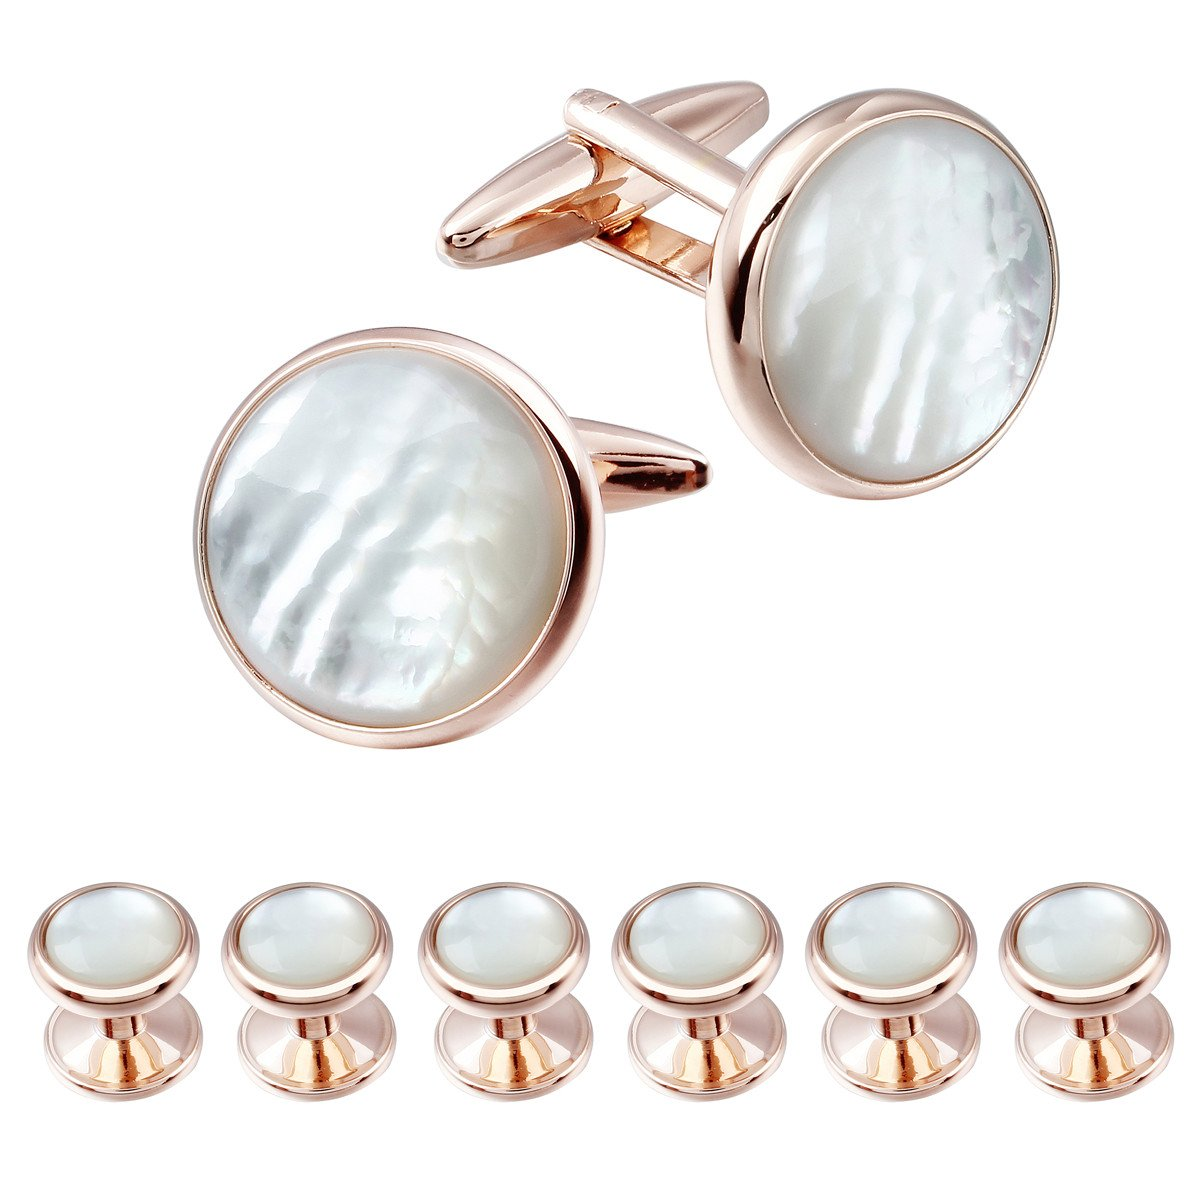 HAWSON Exquisite Mother of Pearl Cuff Links Shirt Studs Set Rose Gold and Gold 1